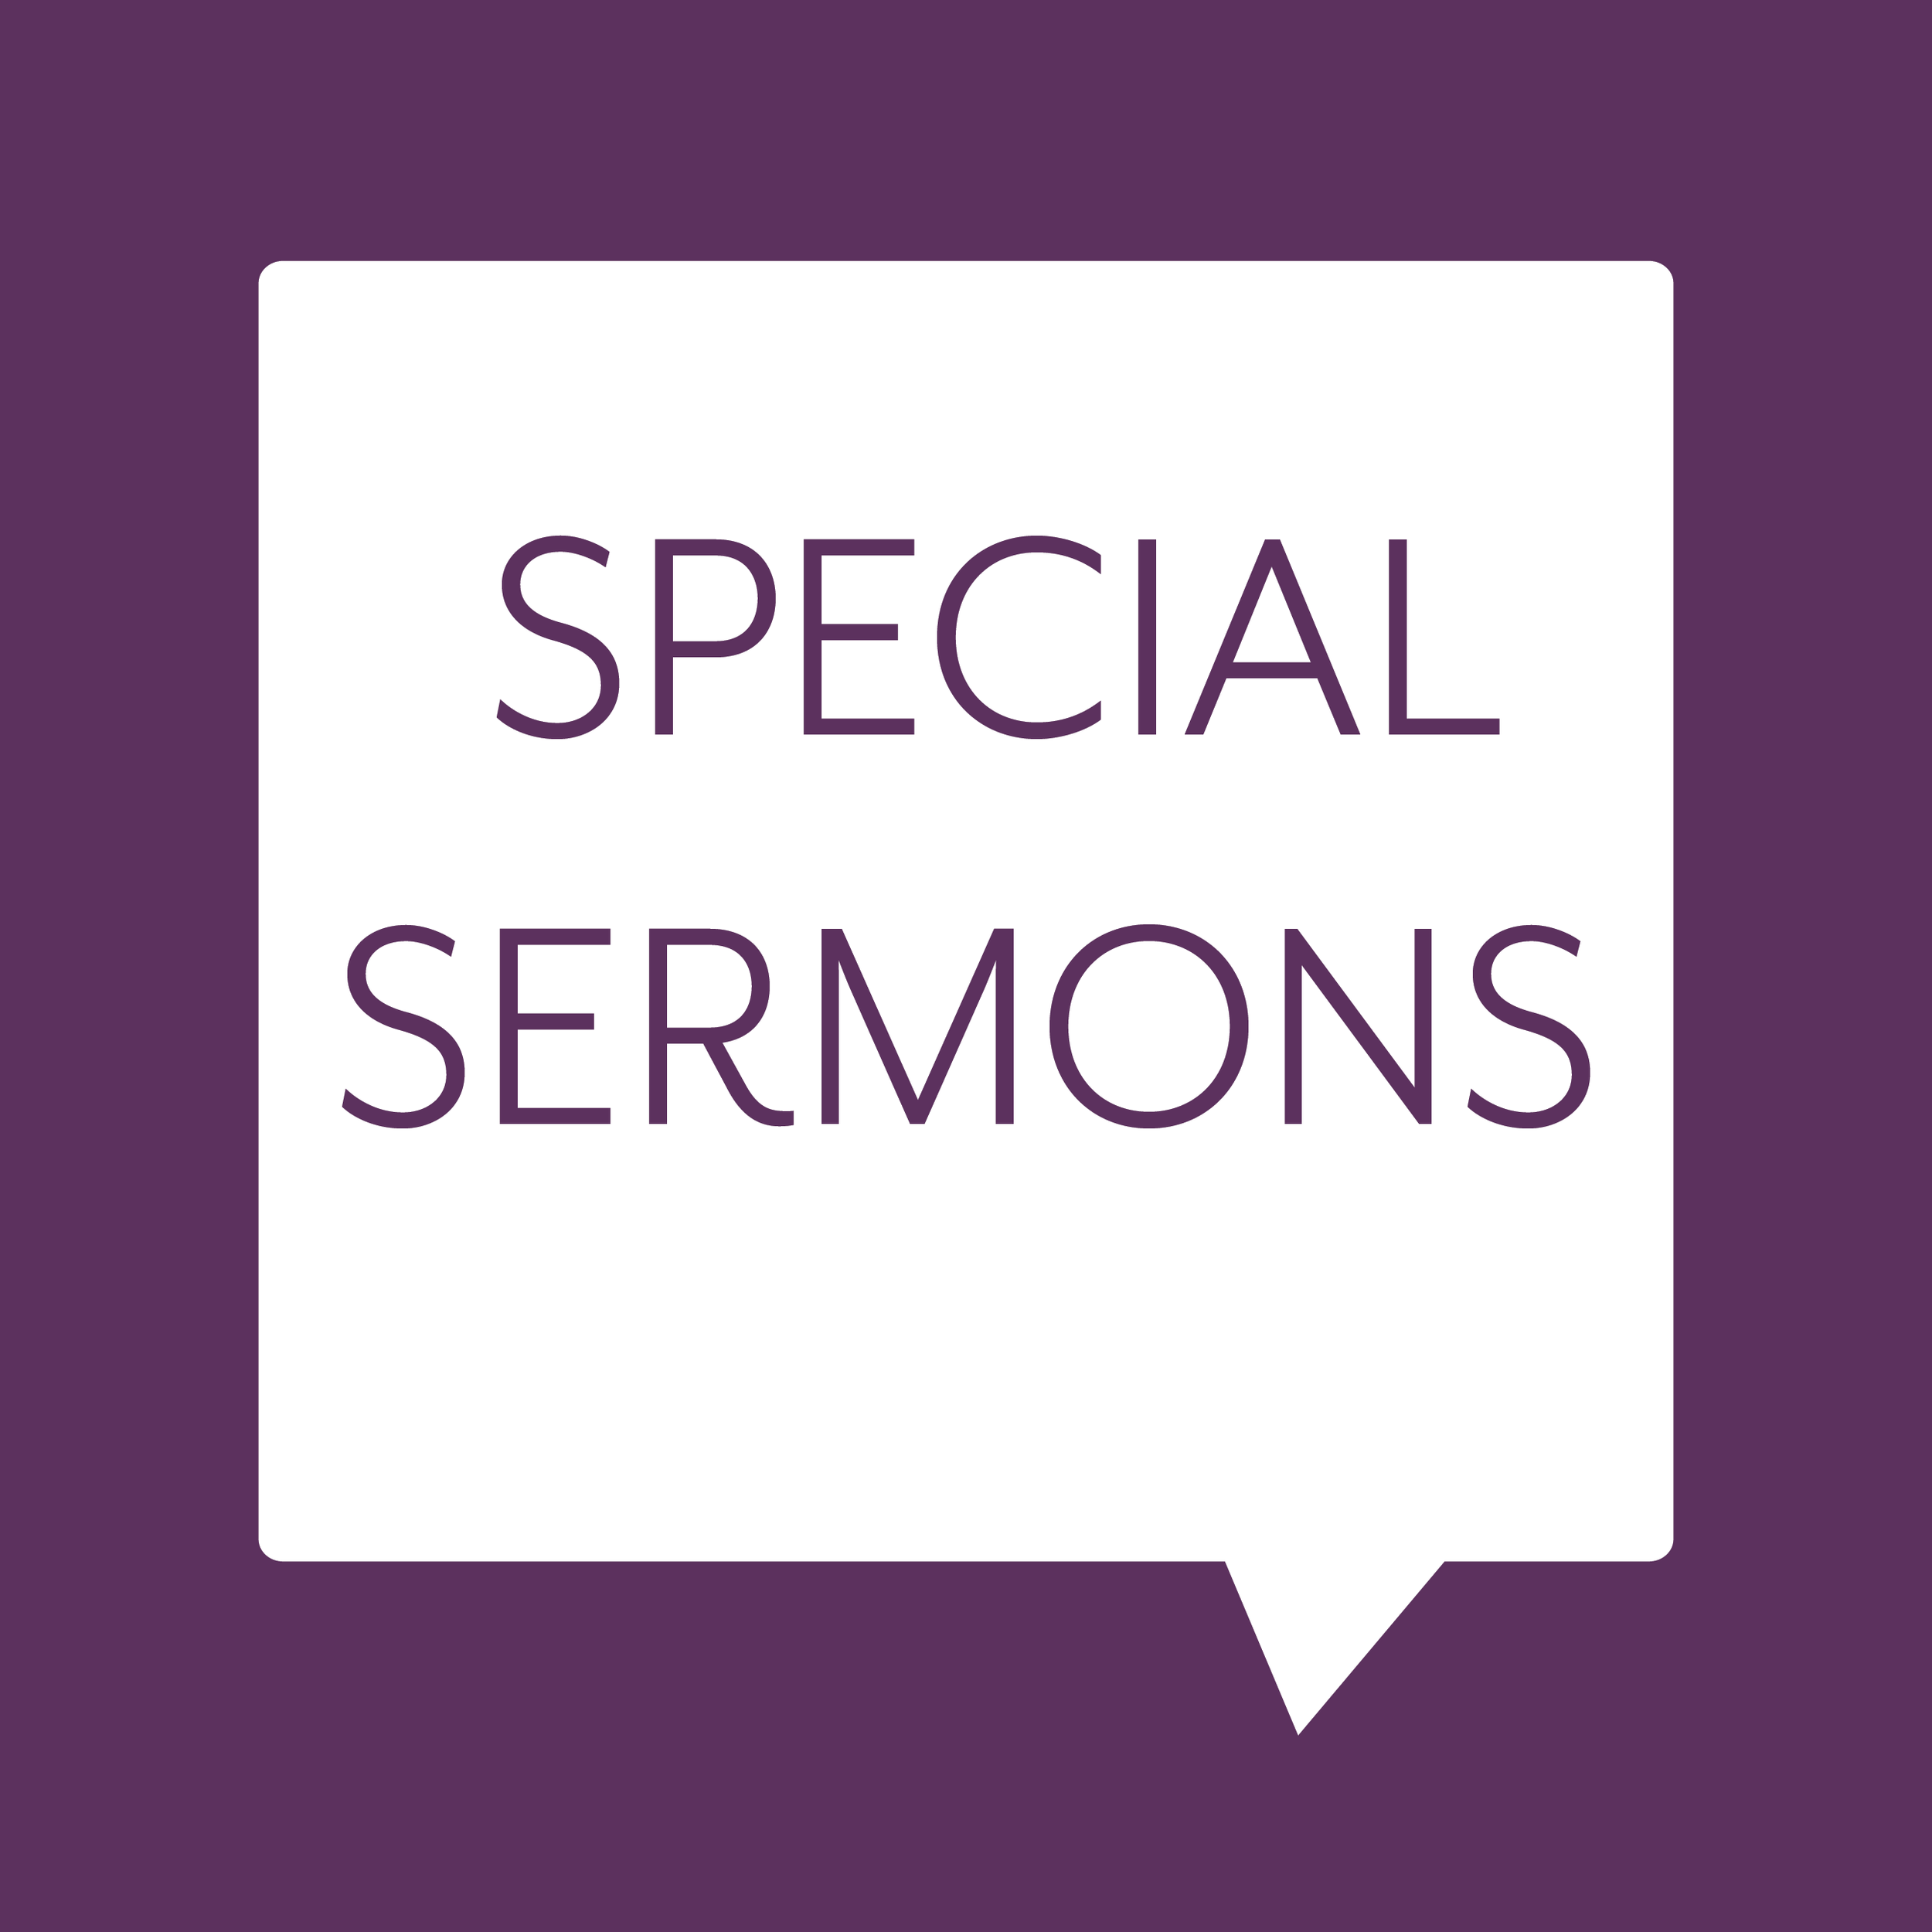 SPECIAL SERMONS.png